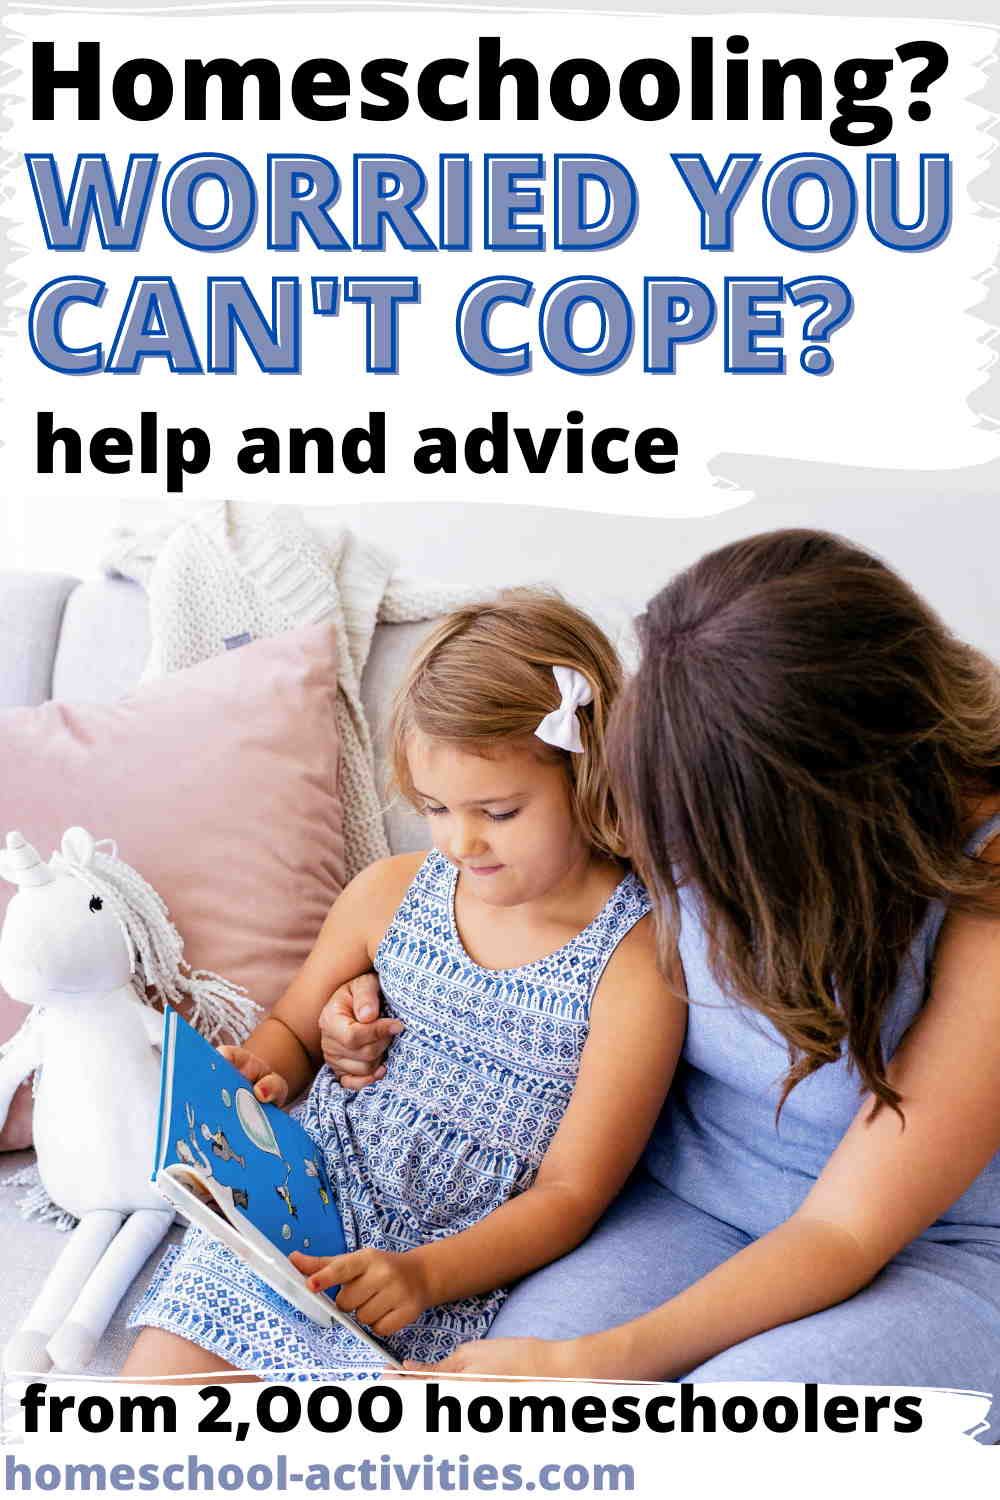 Home school fears: can I cope?